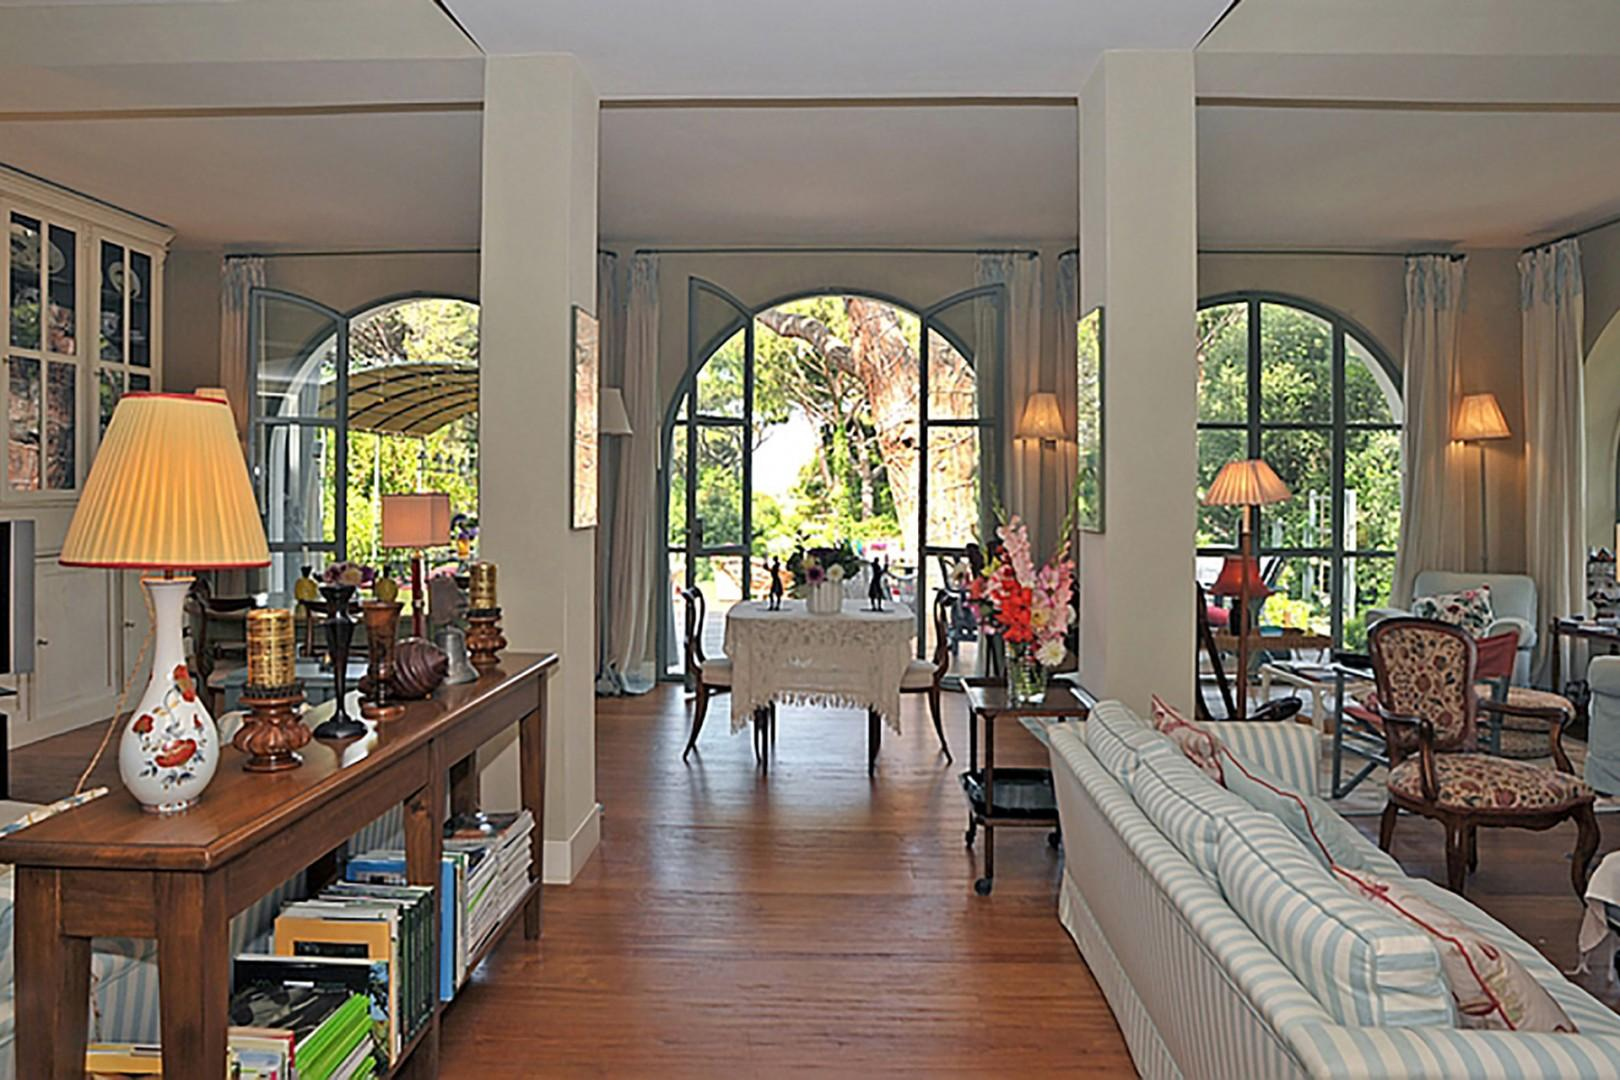 Gracefully arched windows on two sides of the living room bring the outside in.